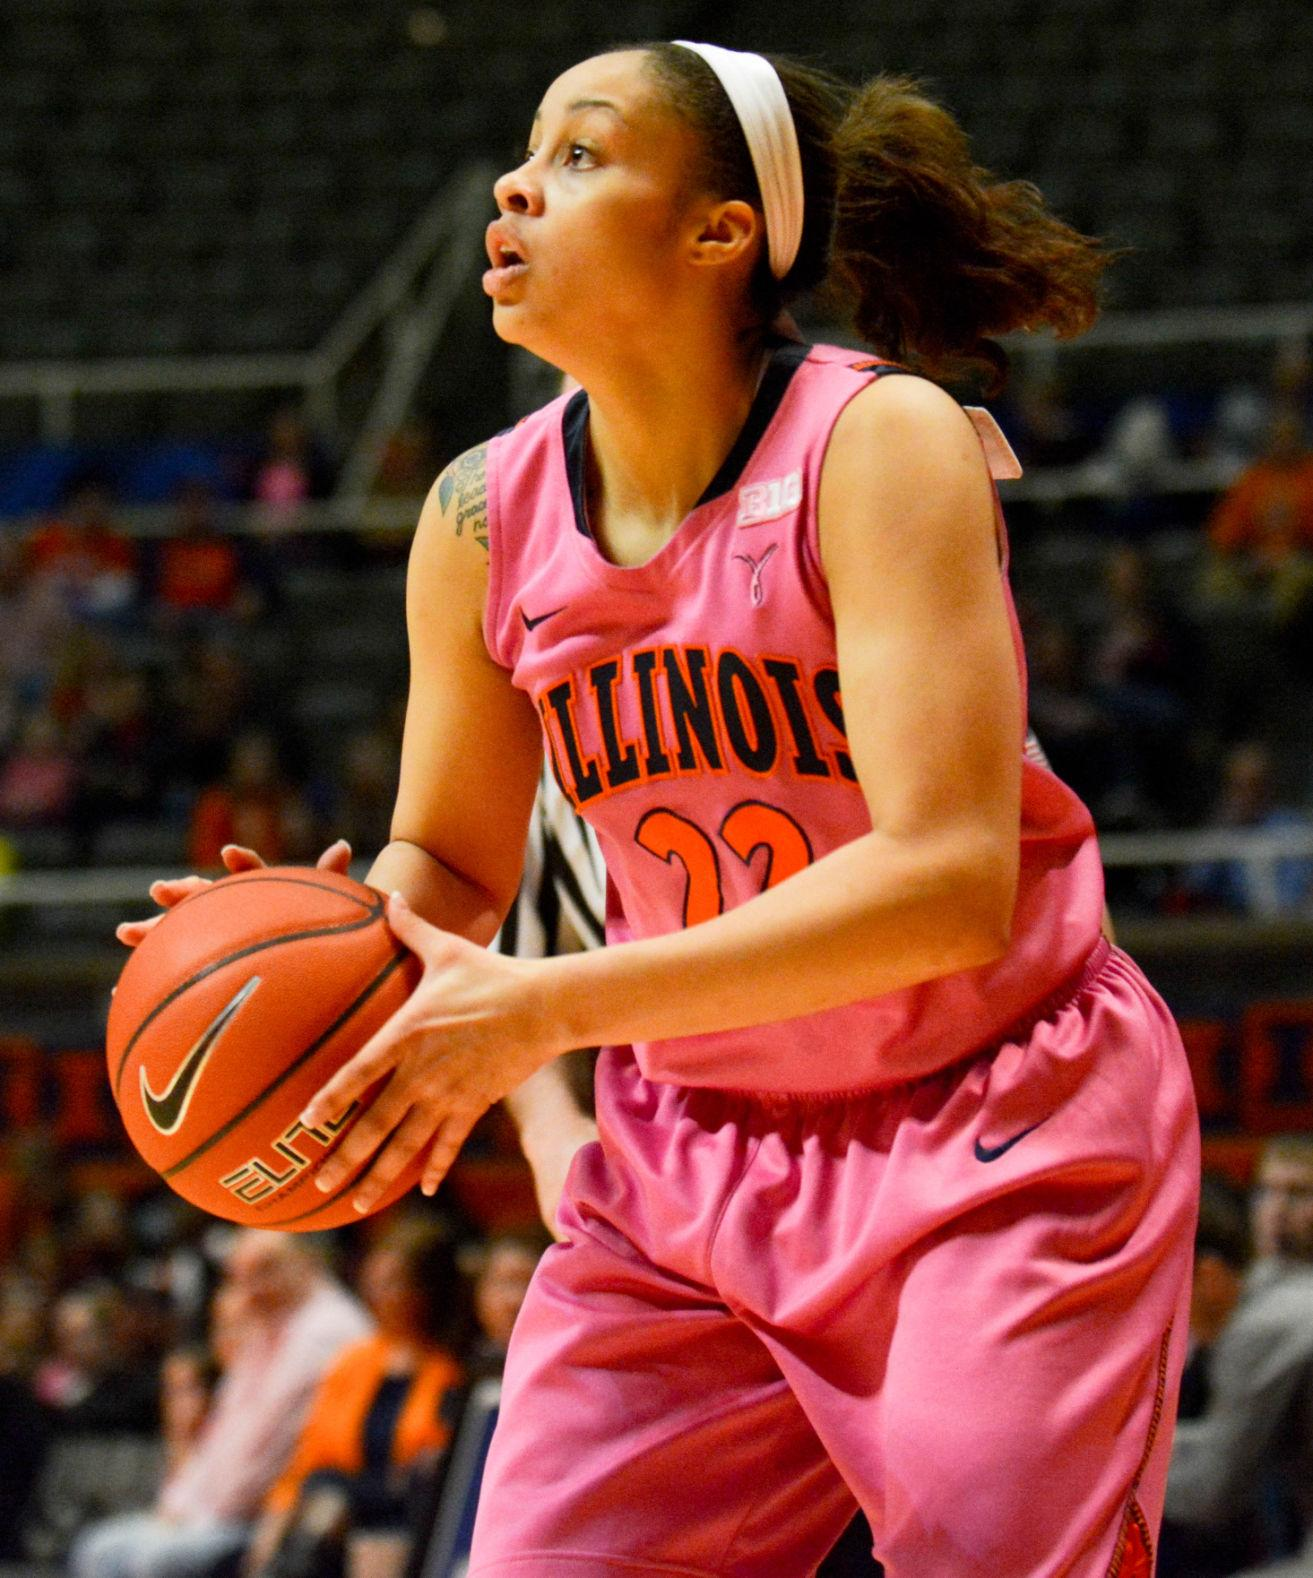 Illinois' Ivory Crawford attempts a shot during the game at State Farm Center on Feb. 16. Crawford was one of the Illini's leading scorers and rebounders last season.